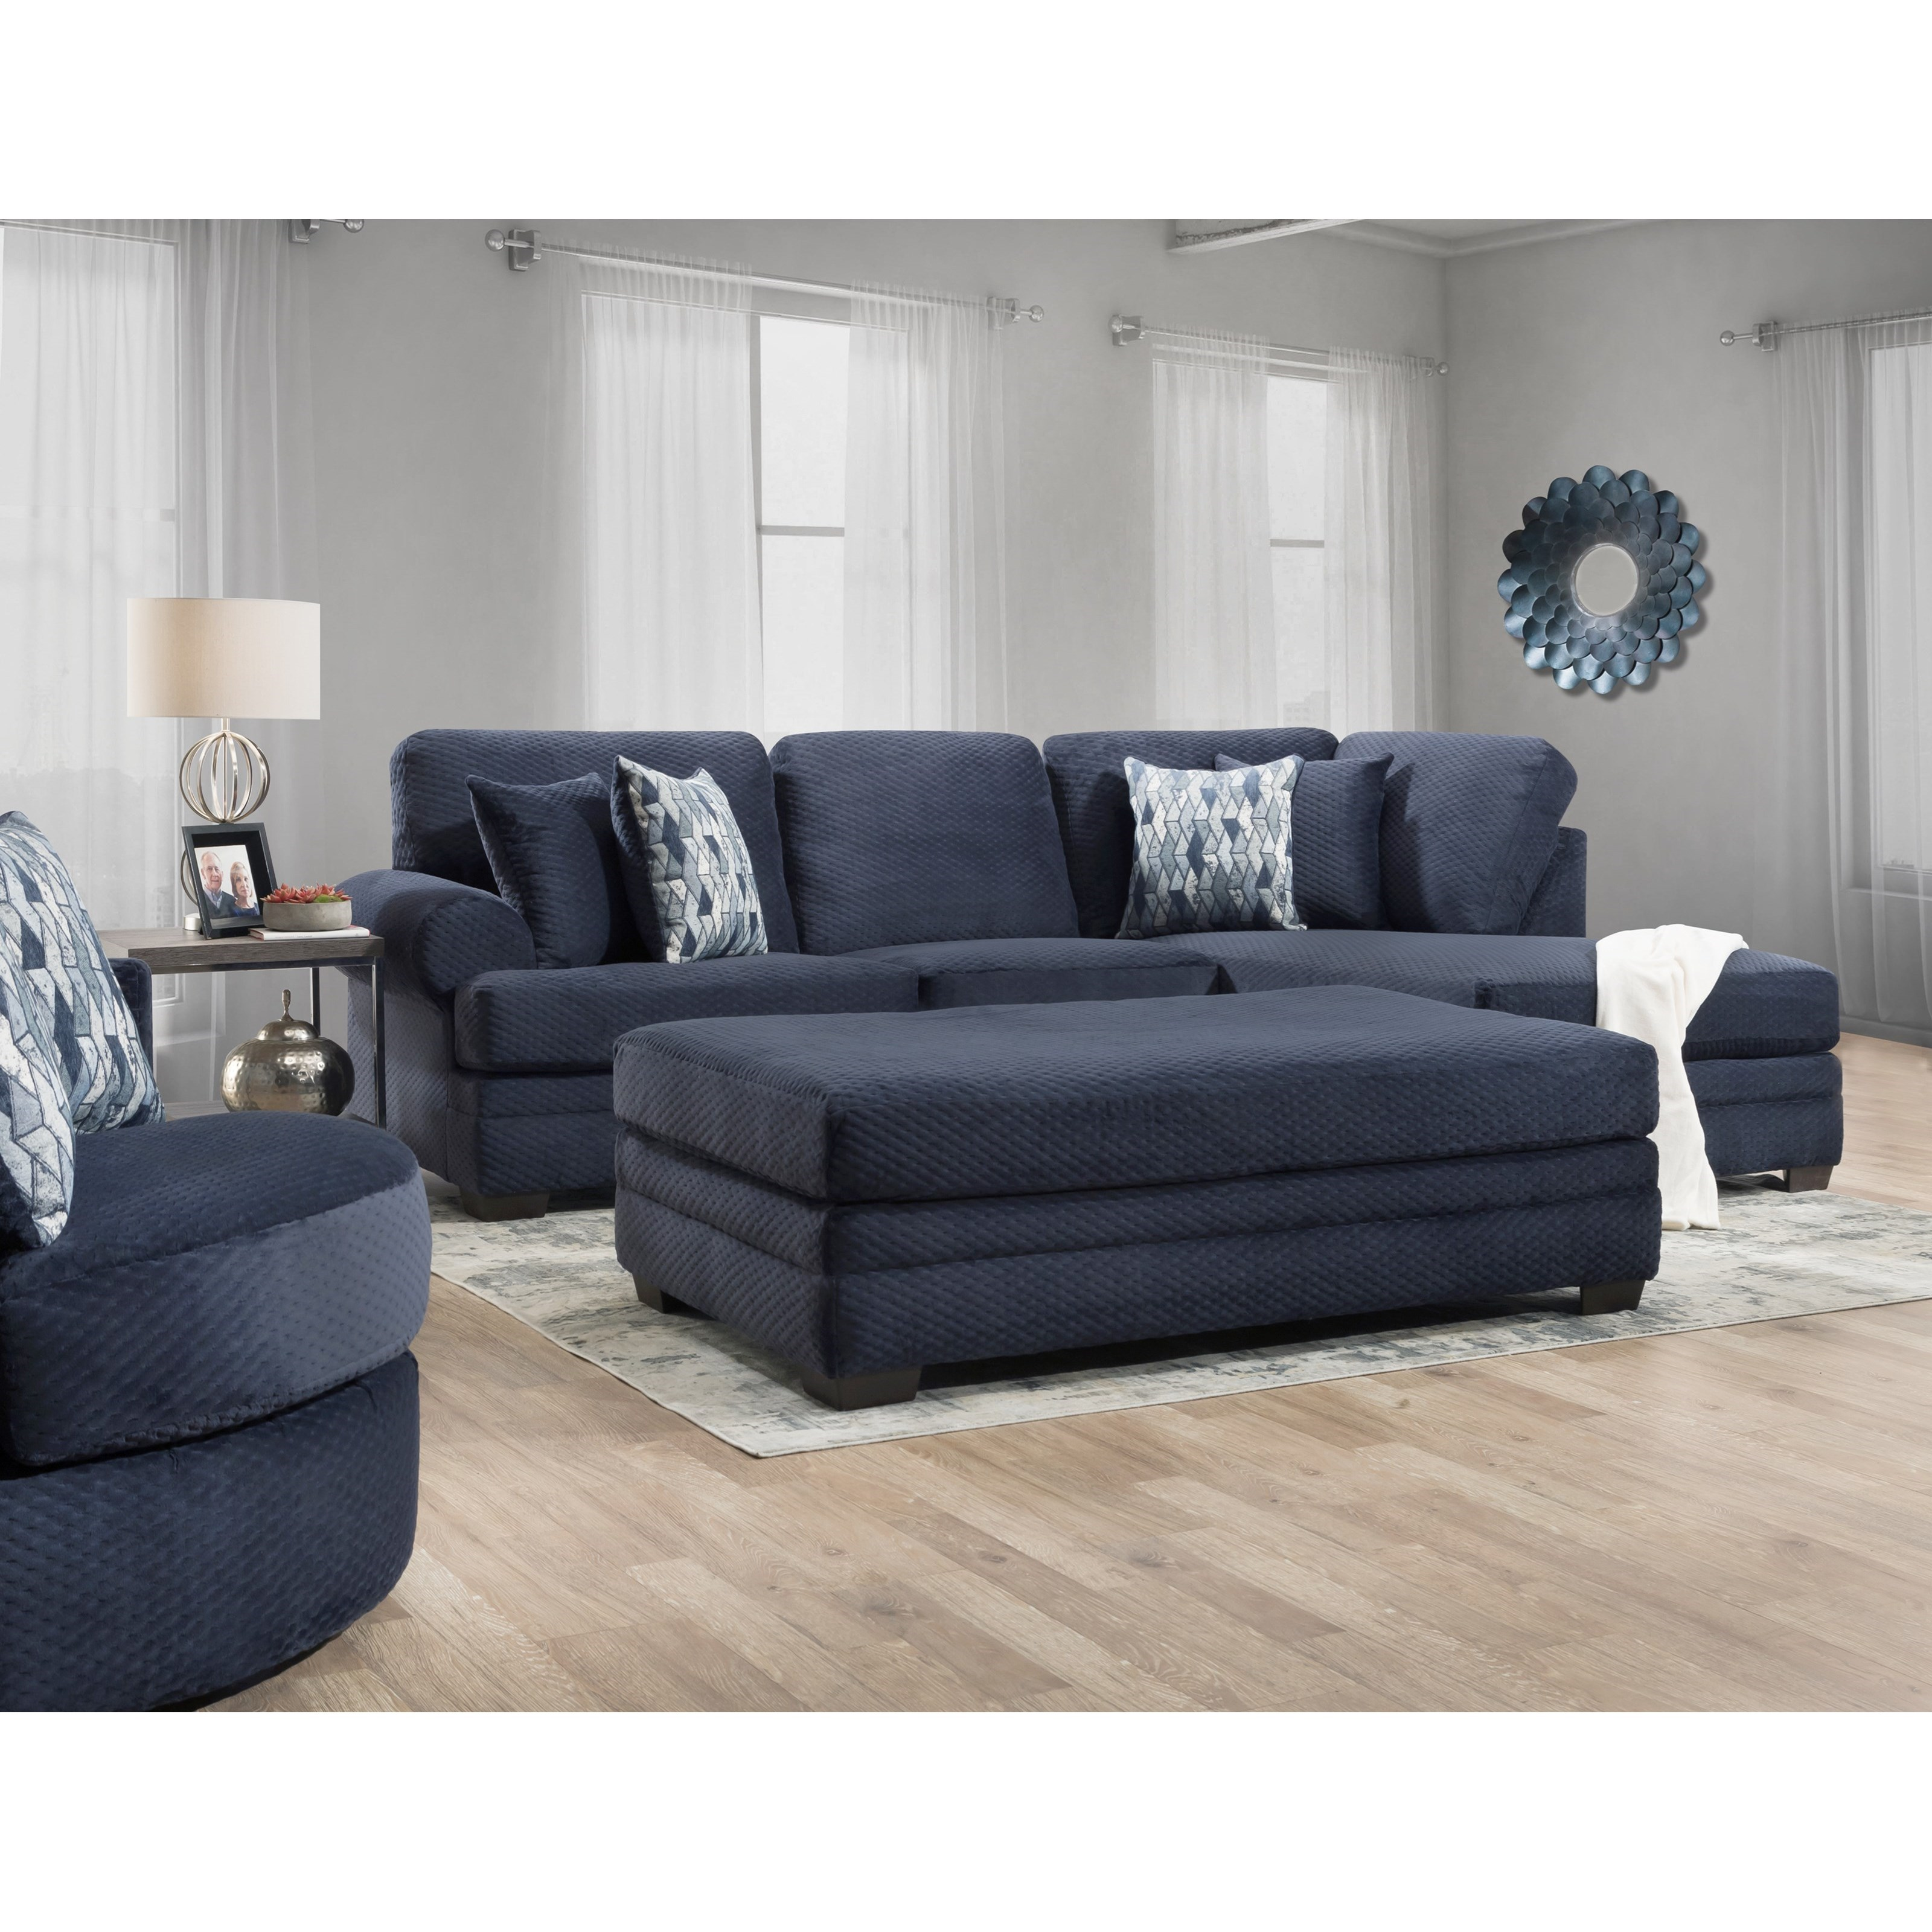 Three Seat Sectional with Rounded Arms